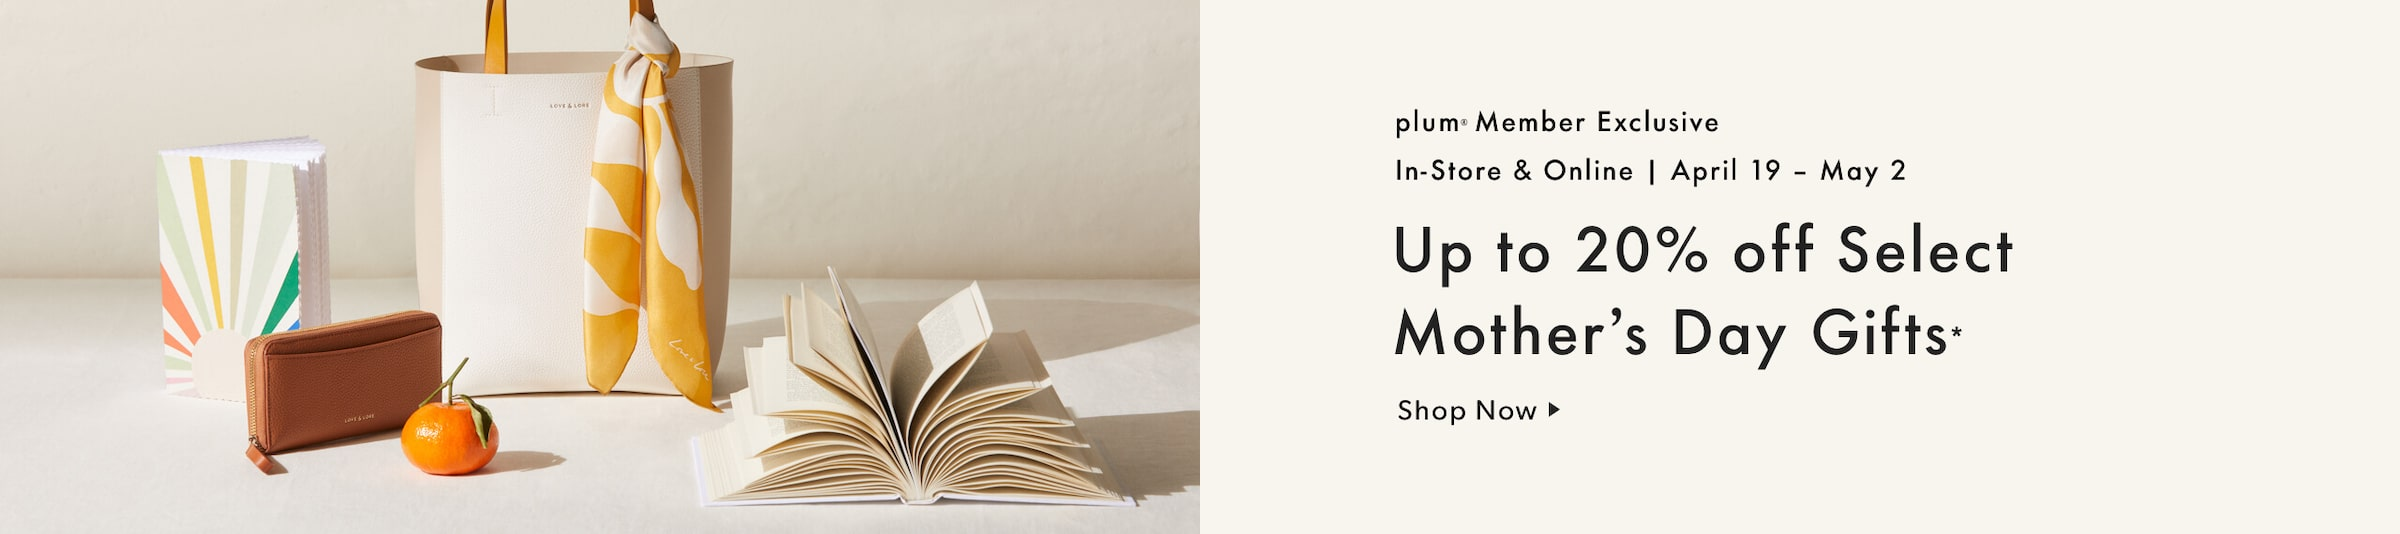 plum member exclusive - up to 20% off select Mother's Day gifts. Offer ends May 2, 2021. In-store and online